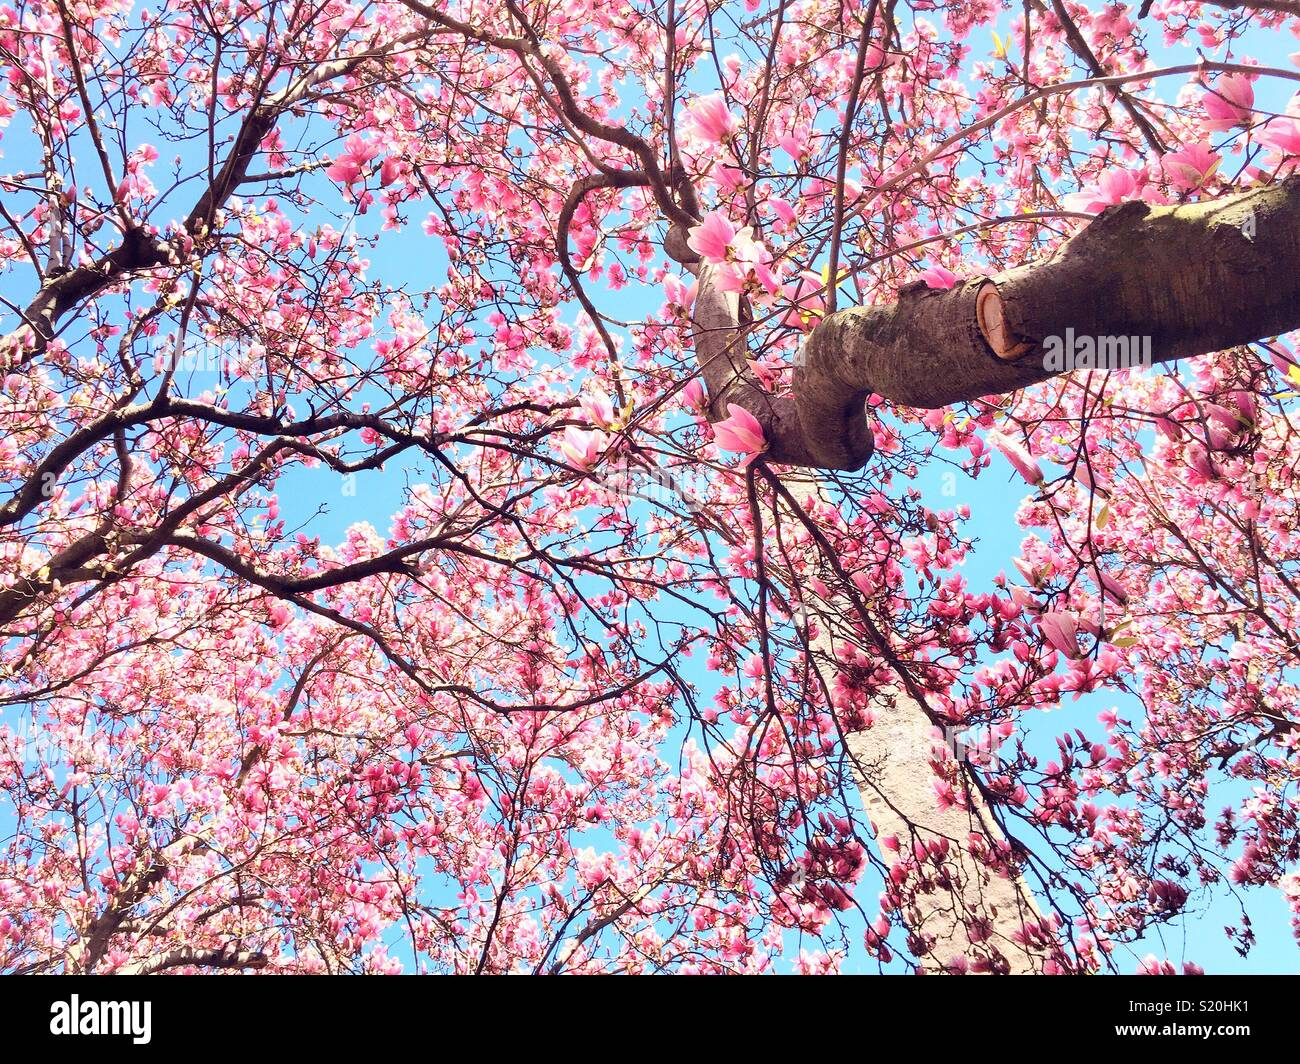 Springtime at Cleopatra's needle, surrounded by pink magnolia blossoms, Central Park, NYC, USA - Stock Image